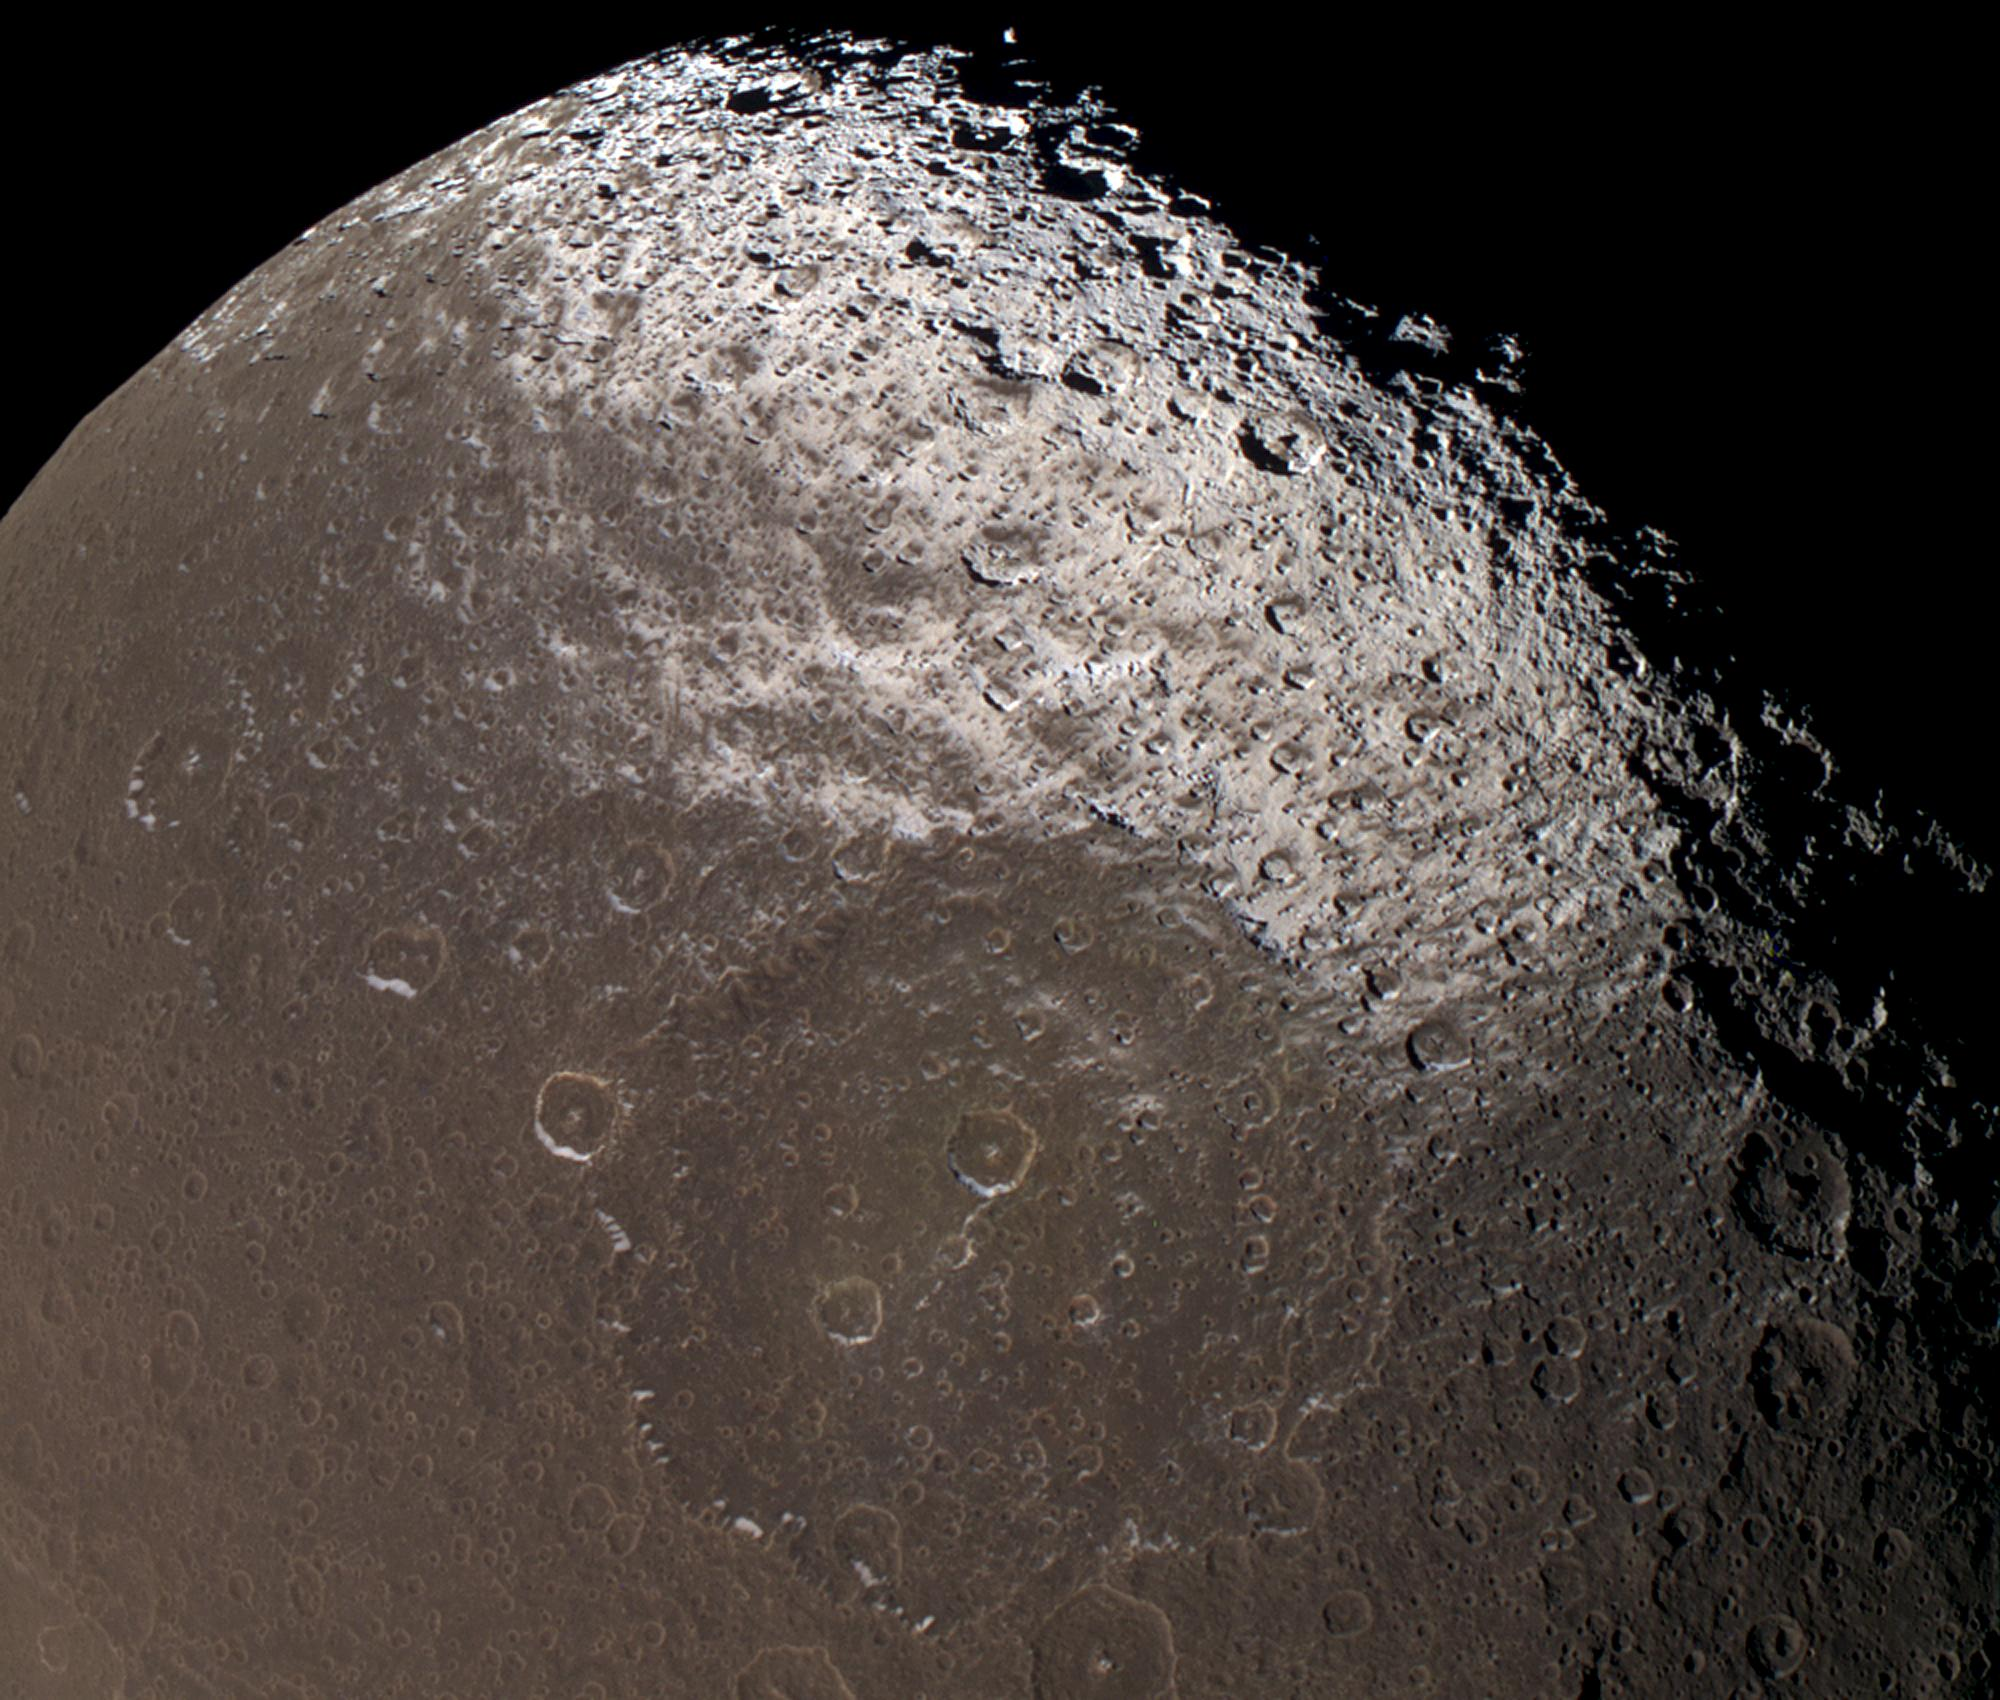 Cassini view of Iapetus, a moon of Saturn